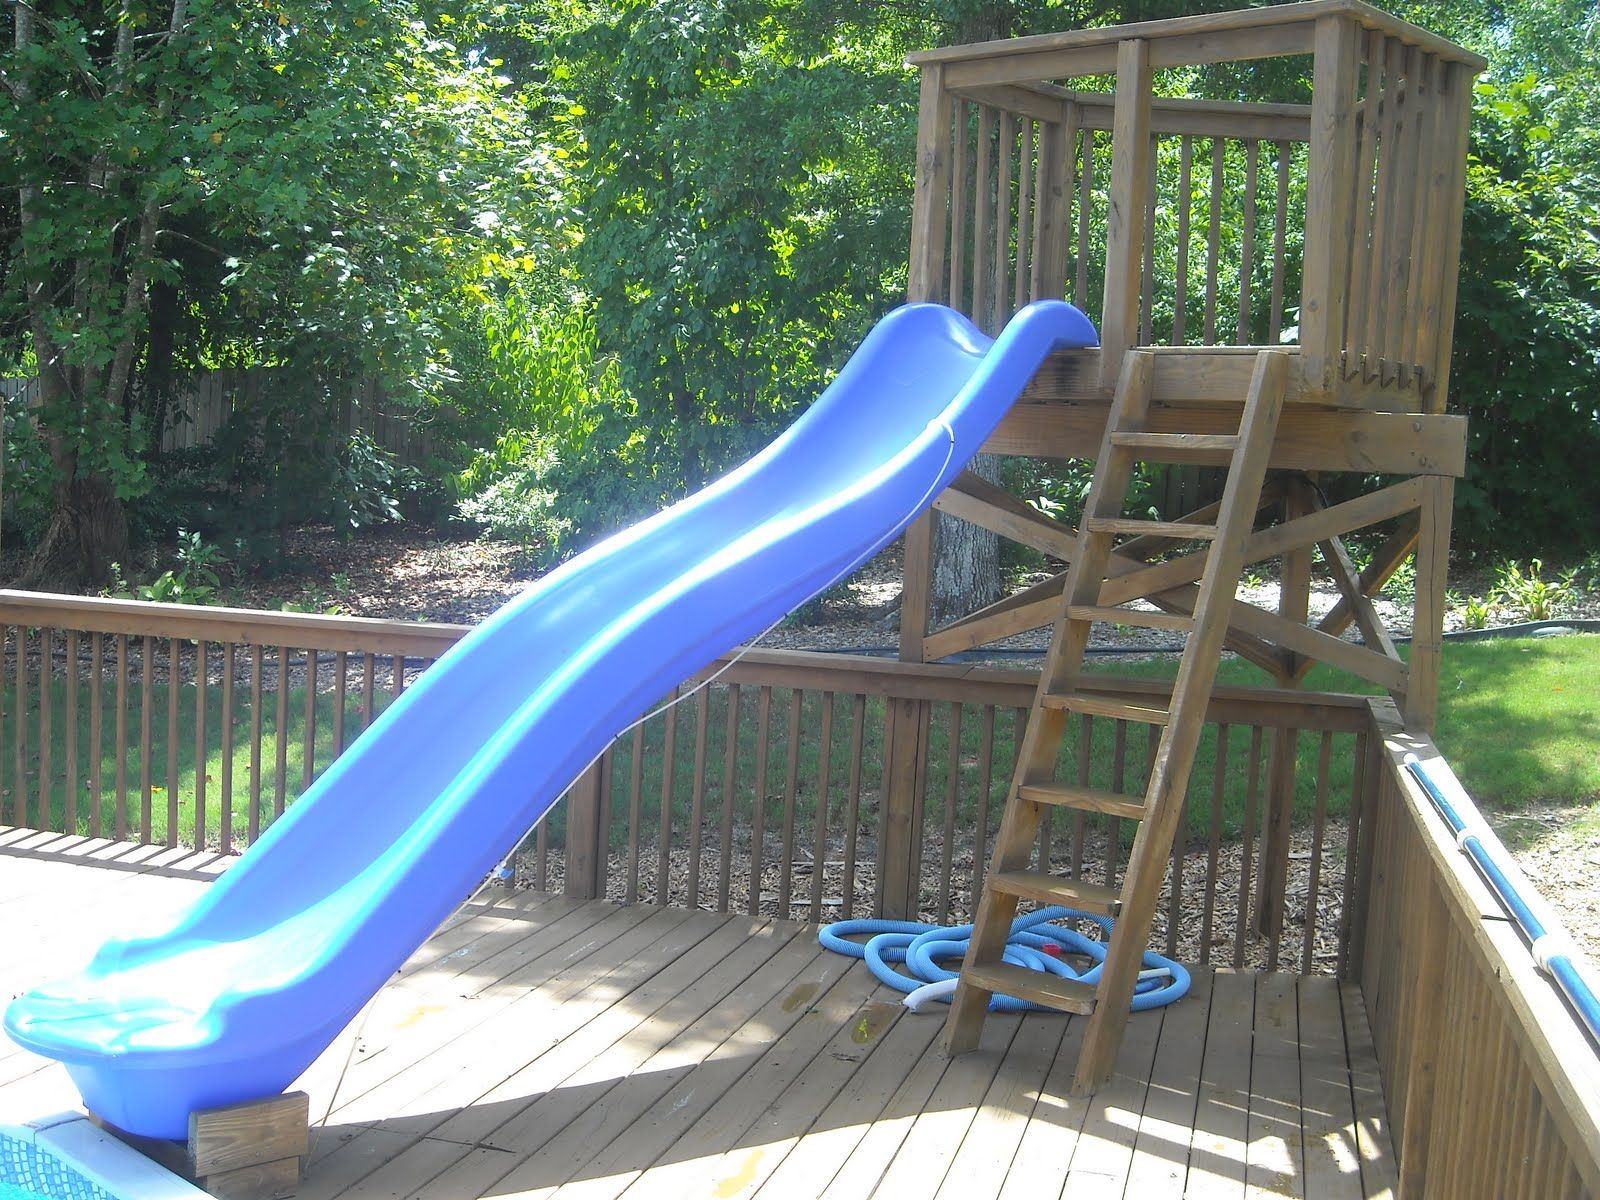 Diy Pool Slide Dad U Stuff For Dads Dad50 25 Pool